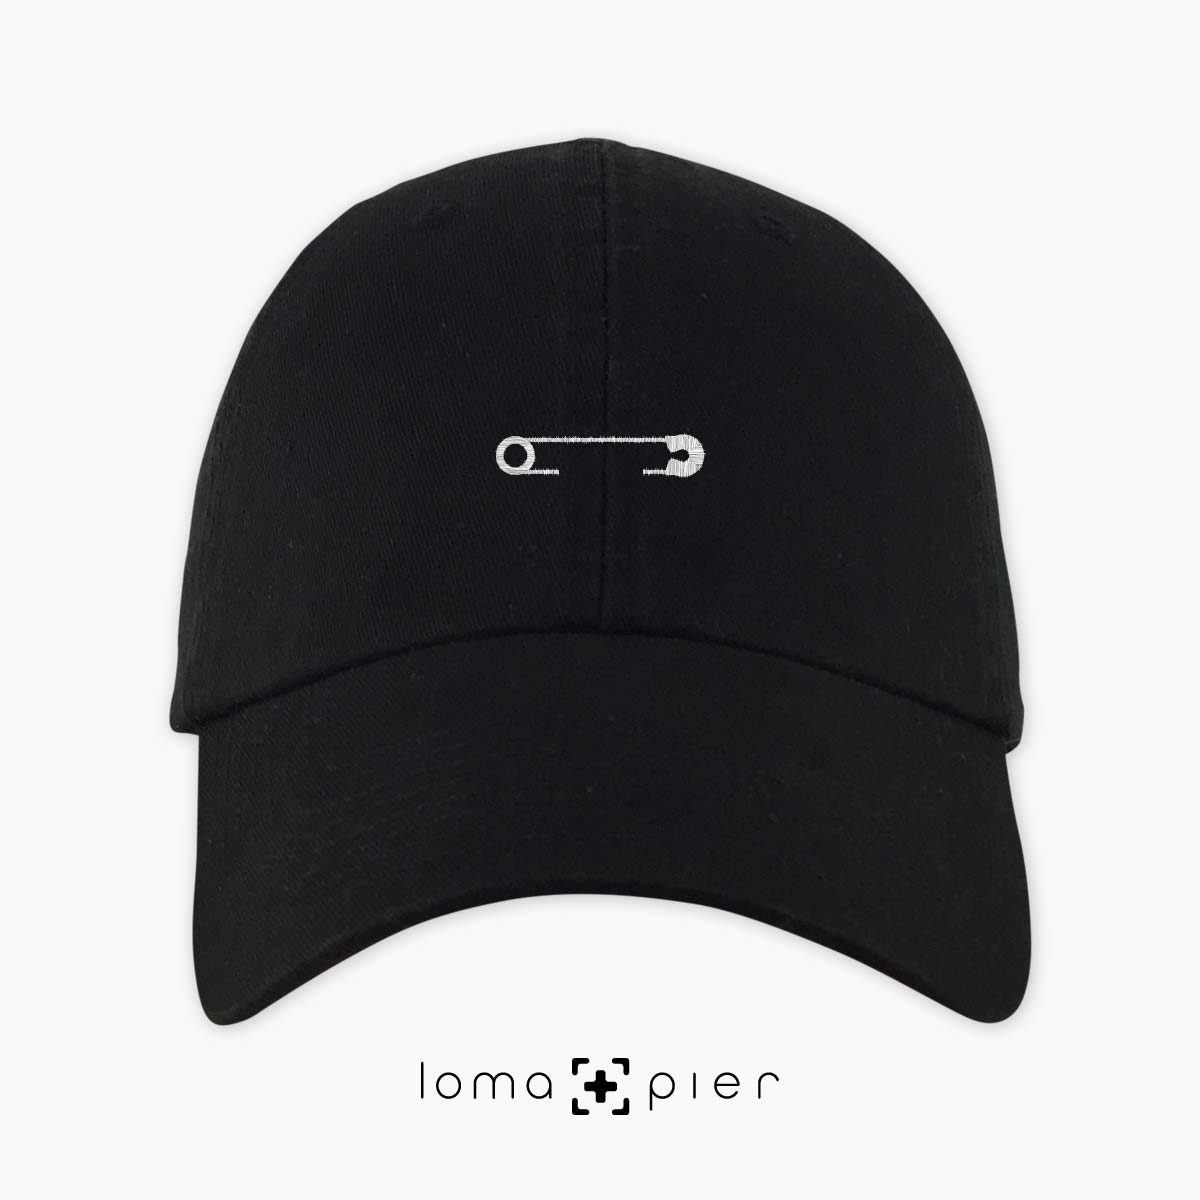 SAFETY PIN icon embroidered on a black unstructured dad hat with white thread by loma+pier hat store made in the USA